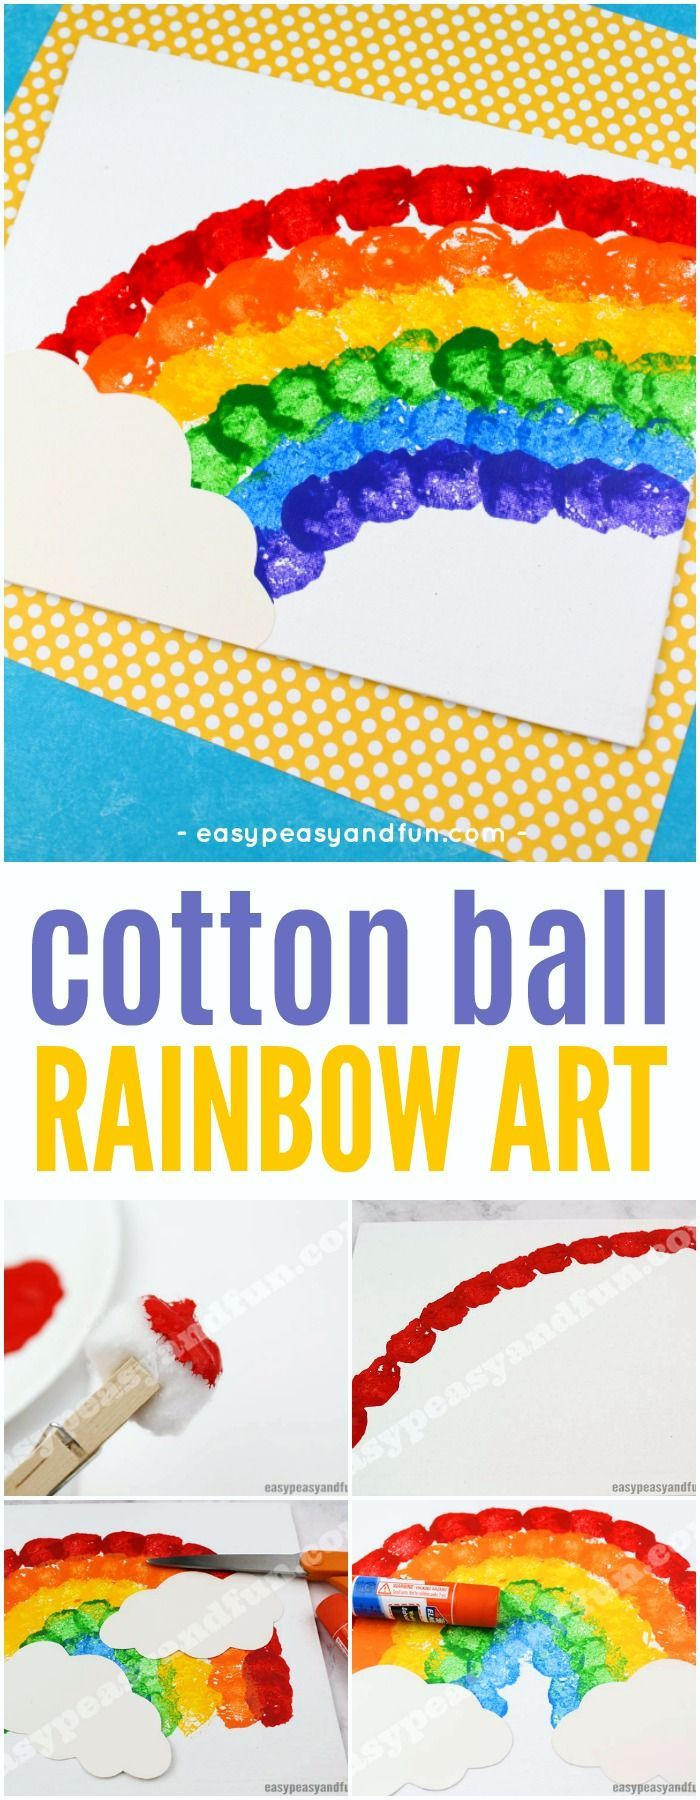 Cotton Ball Rainbow Art - Easy Peasy and Fun #rainbowcrafts